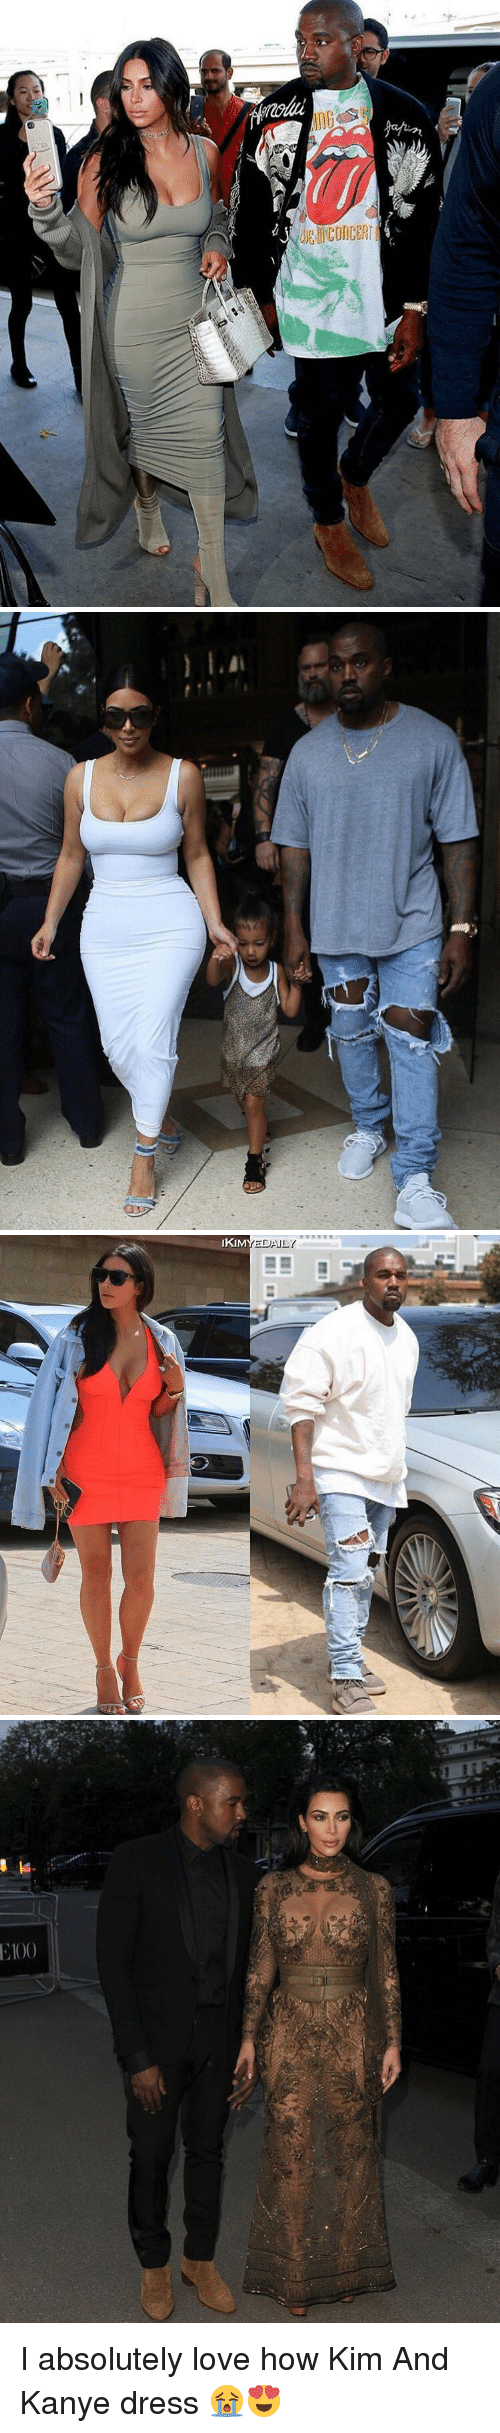 Funny, Kanye, and Love: luaOUO兰Bio   IKI  EDAILY   Tr  9 I absolutely love how Kim And Kanye dress 😭😍